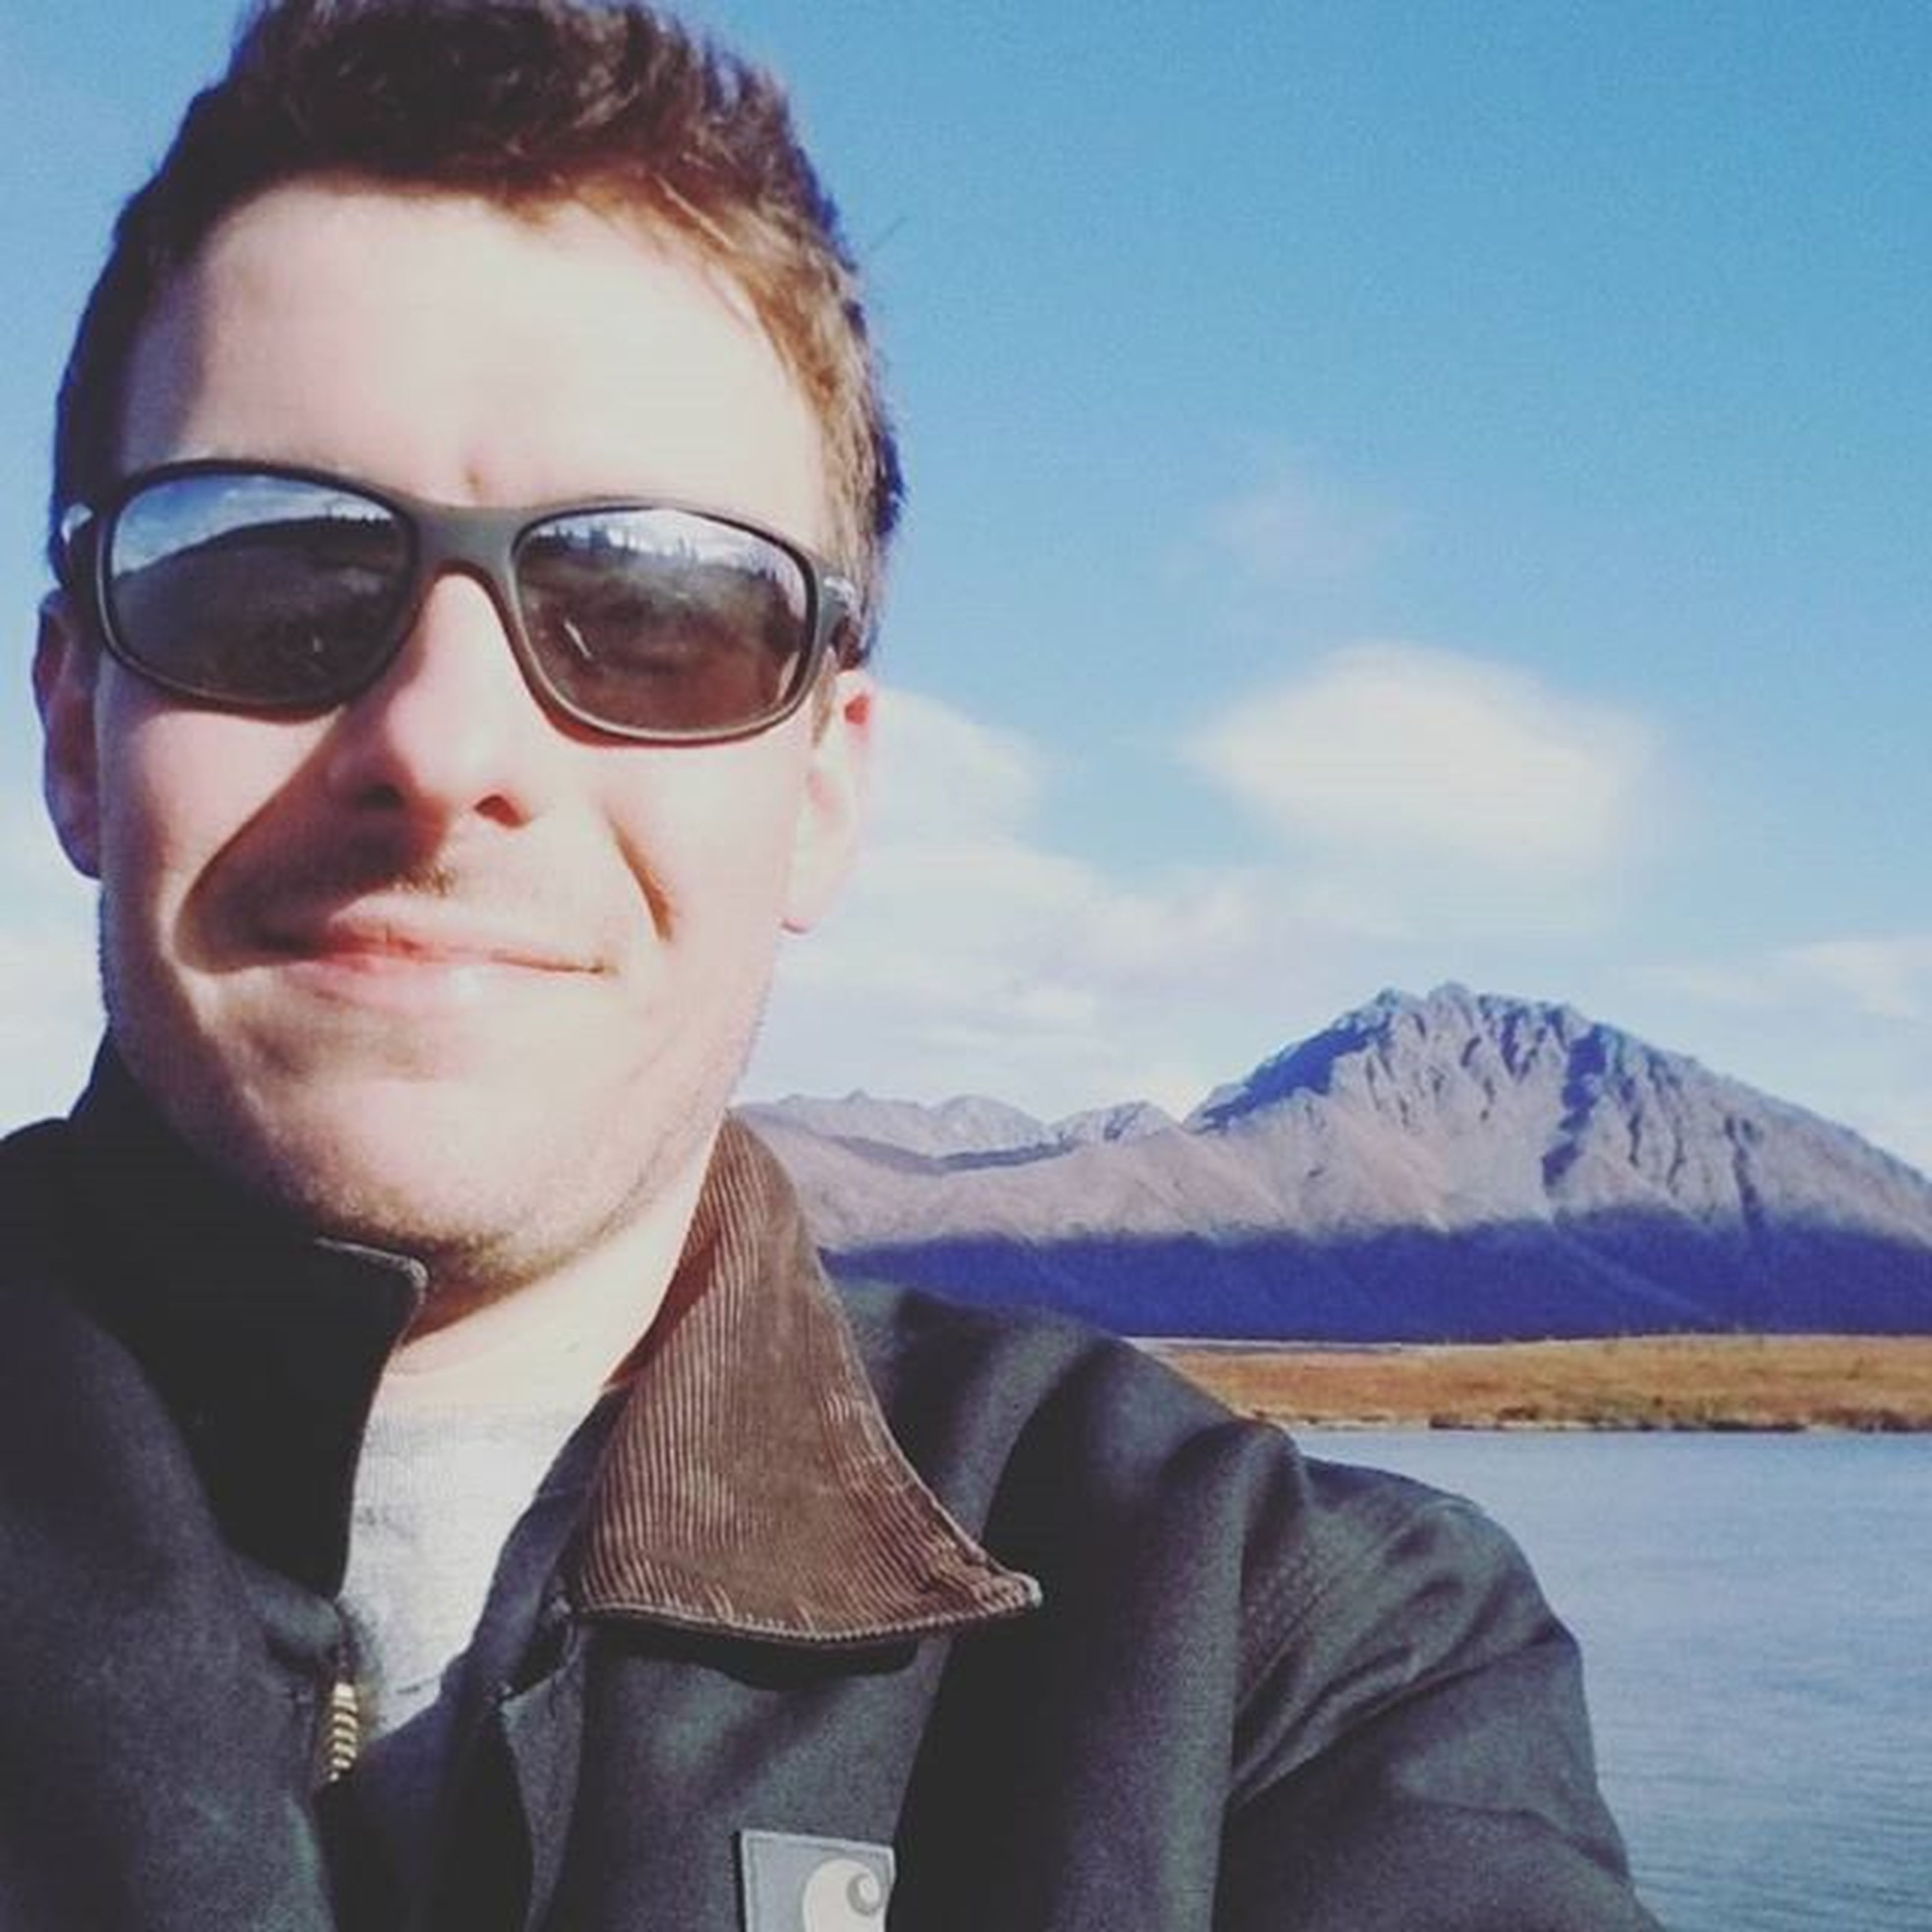 winter, lifestyles, looking at camera, person, portrait, cold temperature, young adult, leisure activity, snow, young men, headshot, mountain, front view, sky, sunglasses, warm clothing, smiling, casual clothing